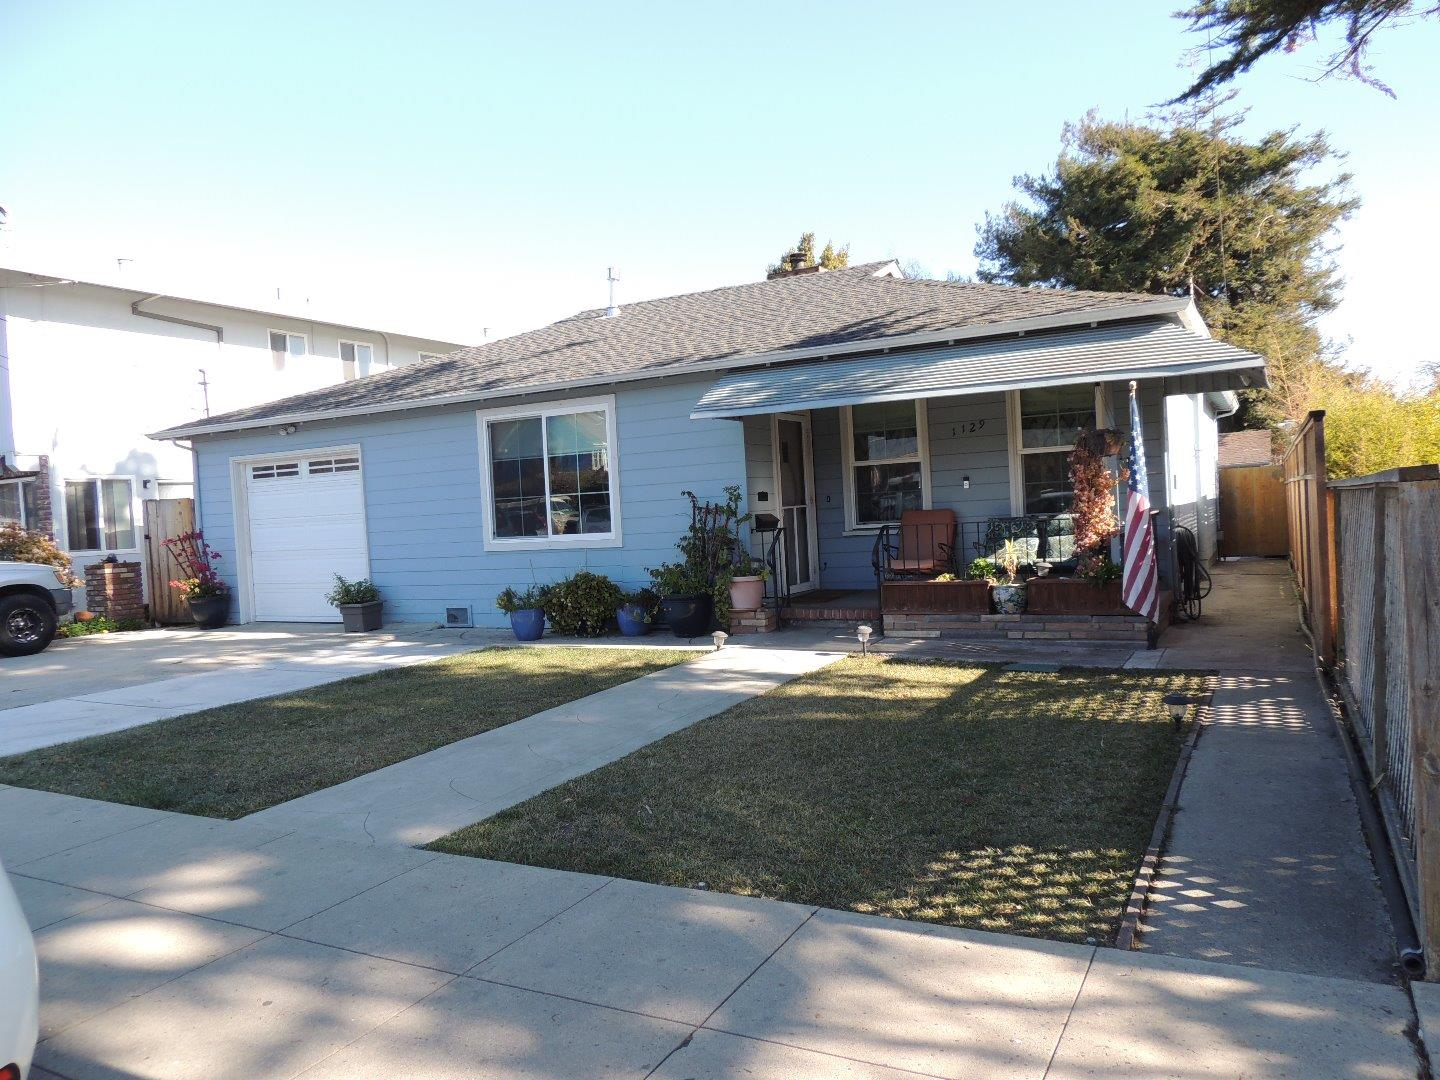 Seabright Beach home. On a large size lot. Owner has put a lot of love into this home. Updated Kitchen, Large Dinning room. enjoy all the natural light from the French doors, that give you the indoor and outdoor feeling. yard is nice and private for friends to enjoy a BBQ you can do after a day at the beach. There is a little bungalow in the back non conforming. Castle beach (Seabright ) is the best. walk to Museum, boardwalk or over to Seabright for stores, restaurants and more. Live on the street where the movie The Entertainer was filmed in the 1974, Released in 75. With Jack Lemon and Ray Bolger & Sada Thompson. Just houses from the Beach and Boardwalk is across the famous Trussell that was used in Lost Boys movie.